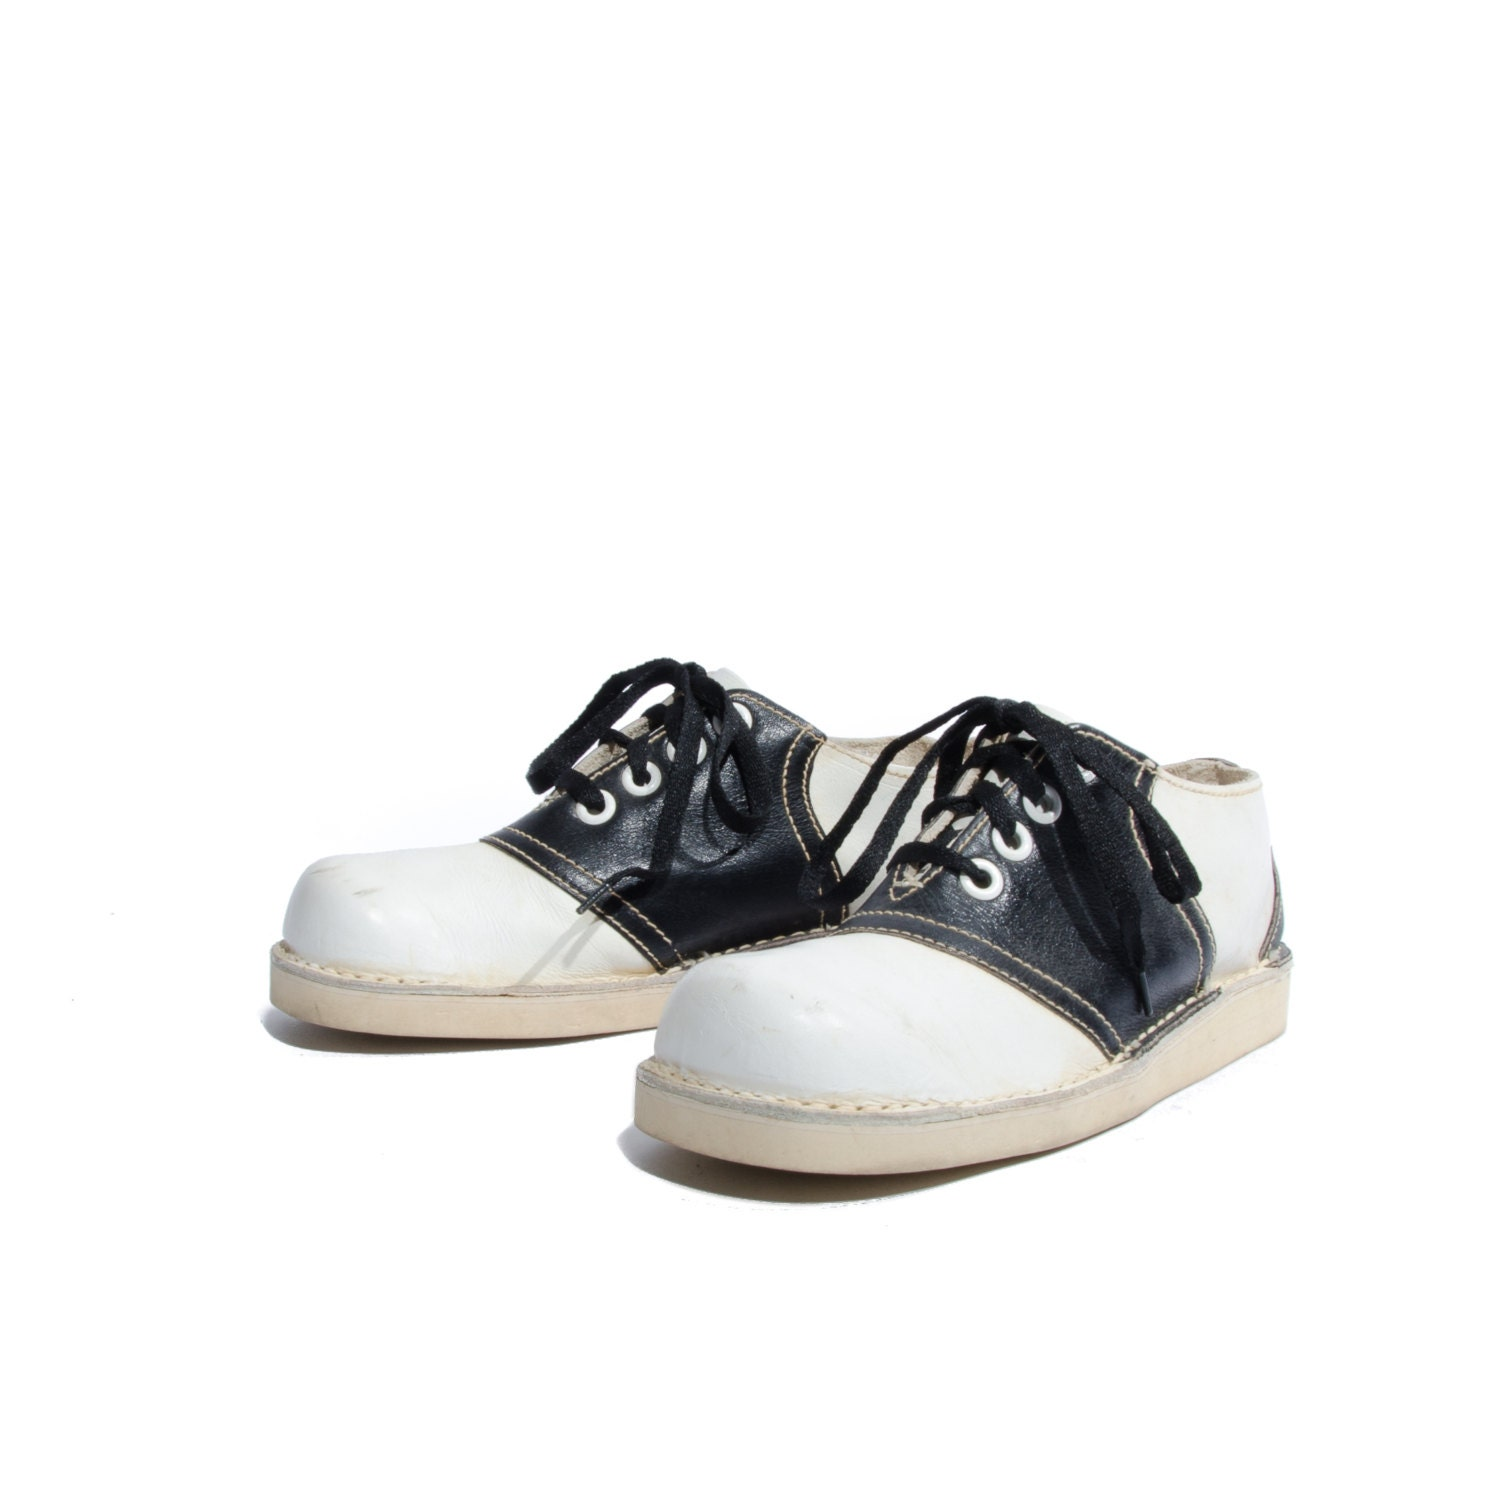 vintage gaymore black white saddle shoes by